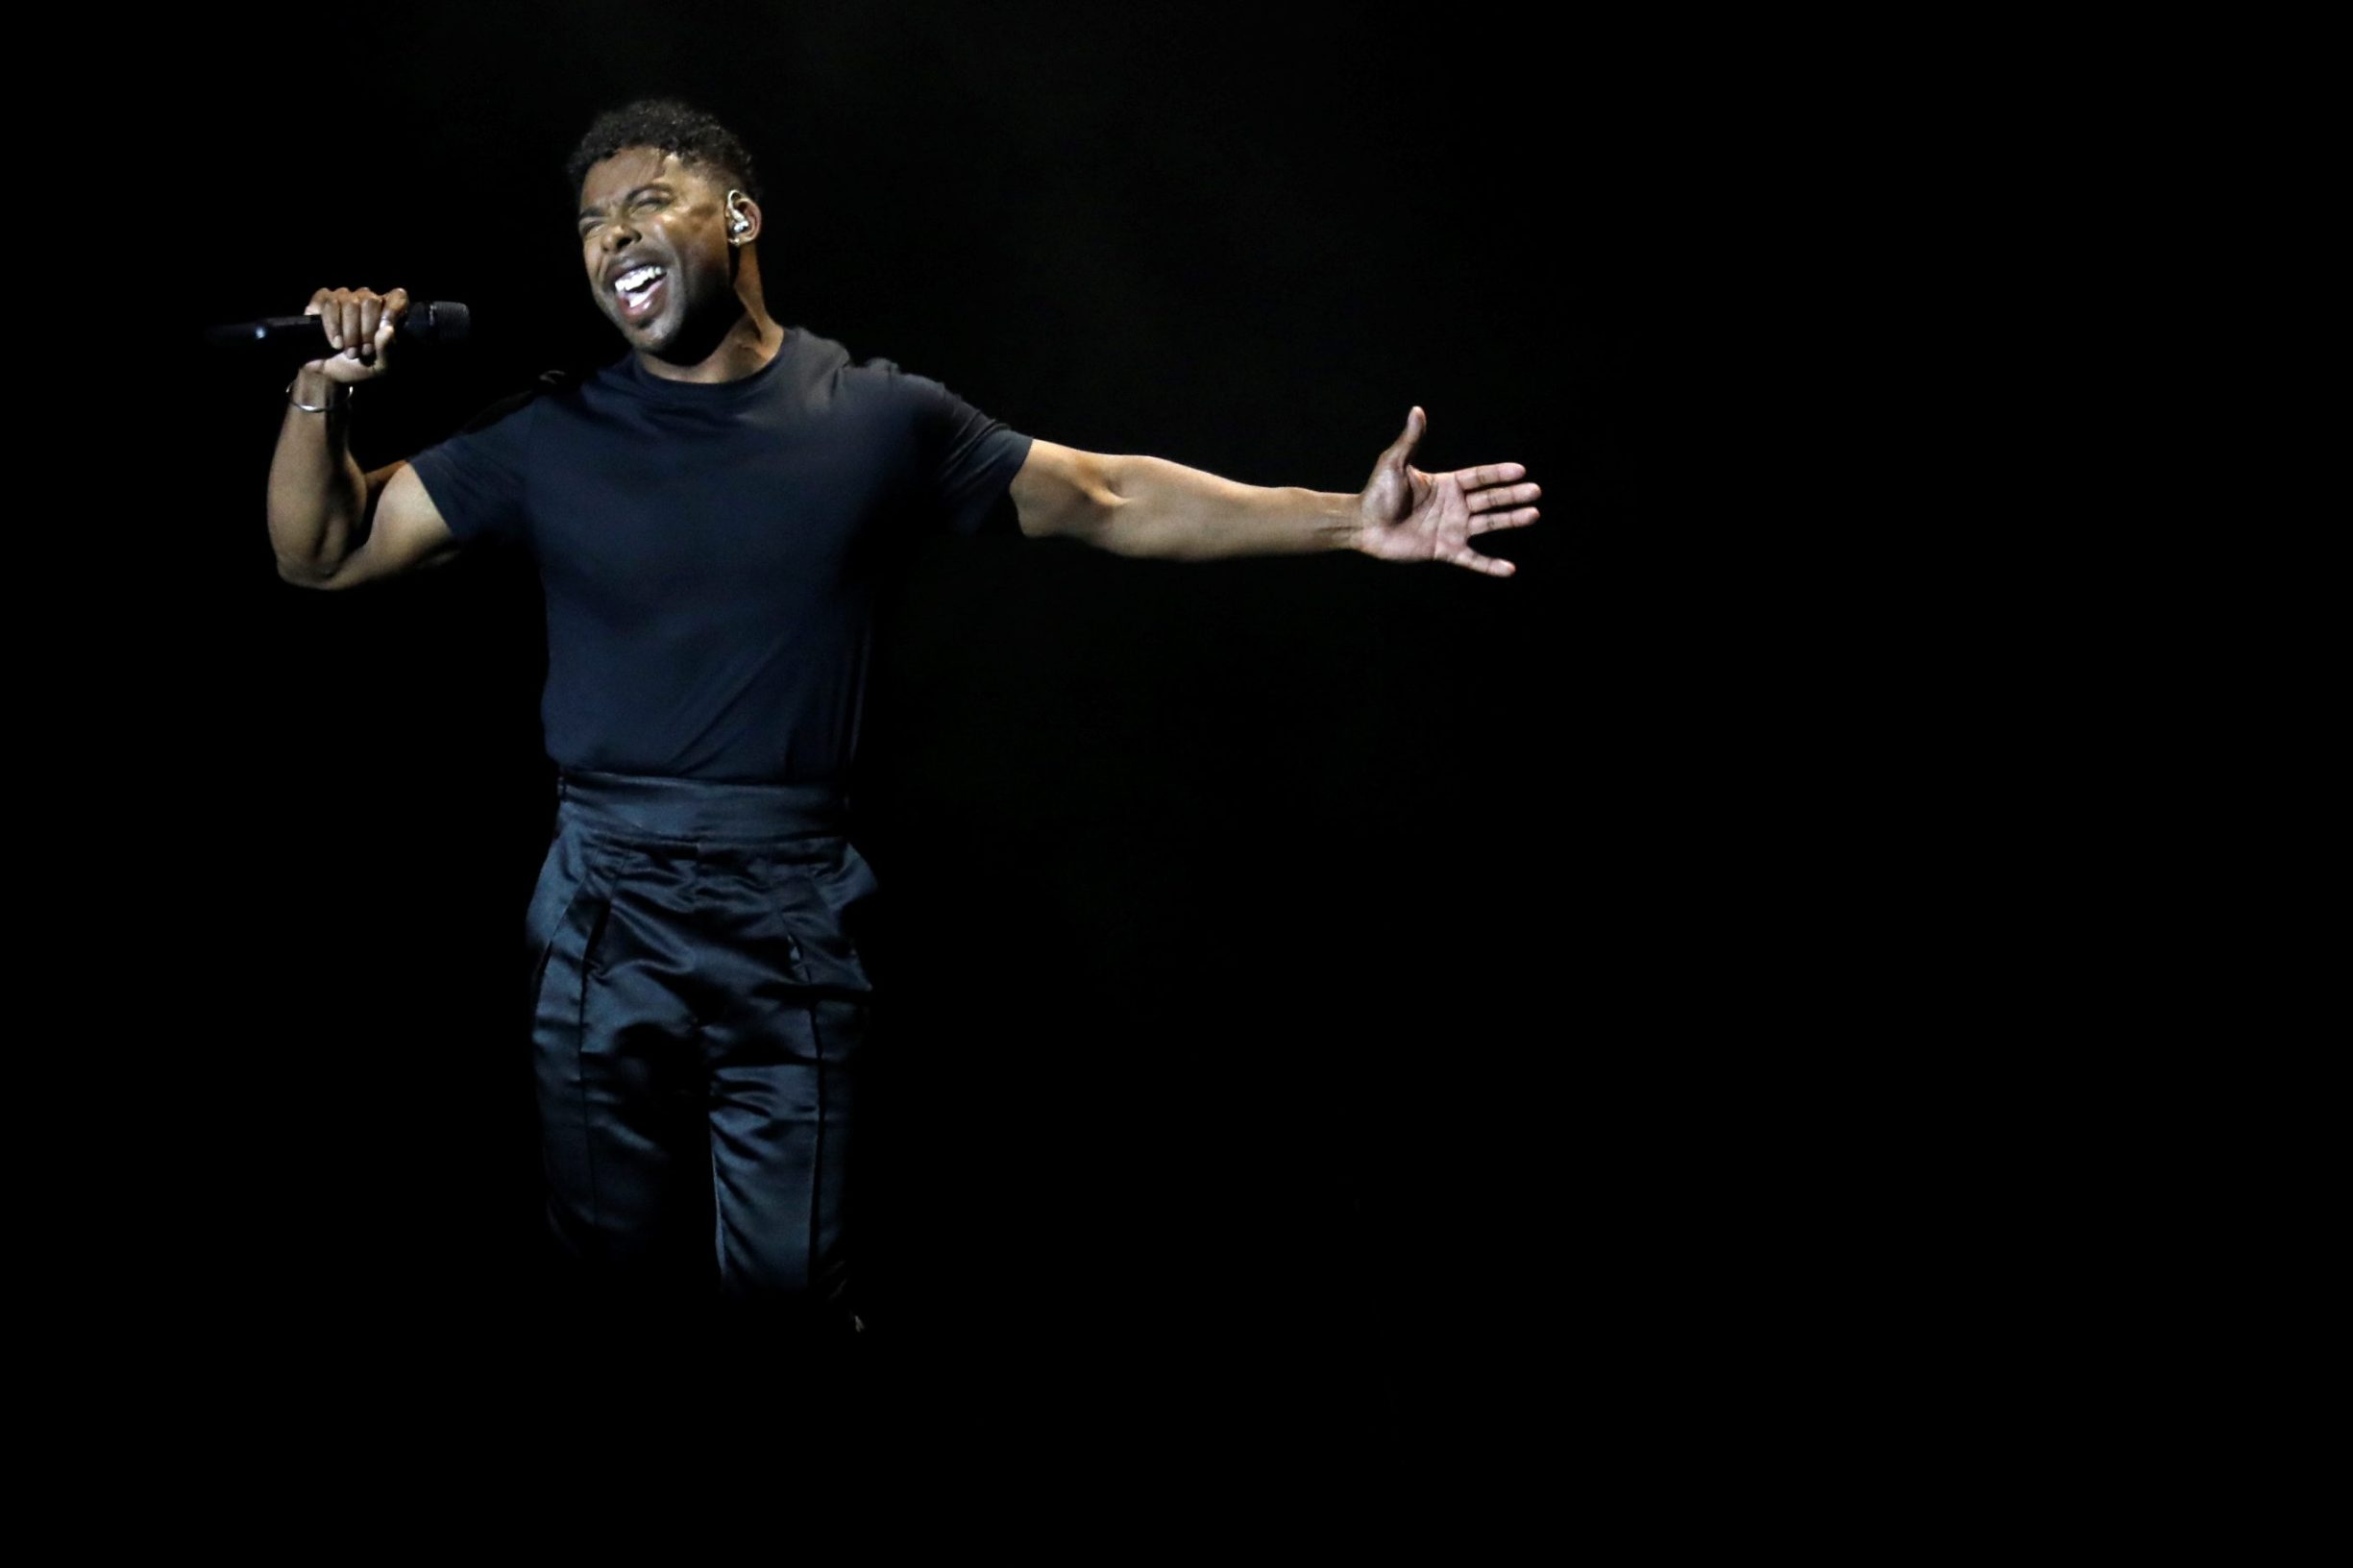 Participant John Lundvik of Sweden performs during second semi-final of 2019 Eurovision Song Contest in Tel Aviv, Israel May 16, 2019. REUTERS/ Amir Cohen